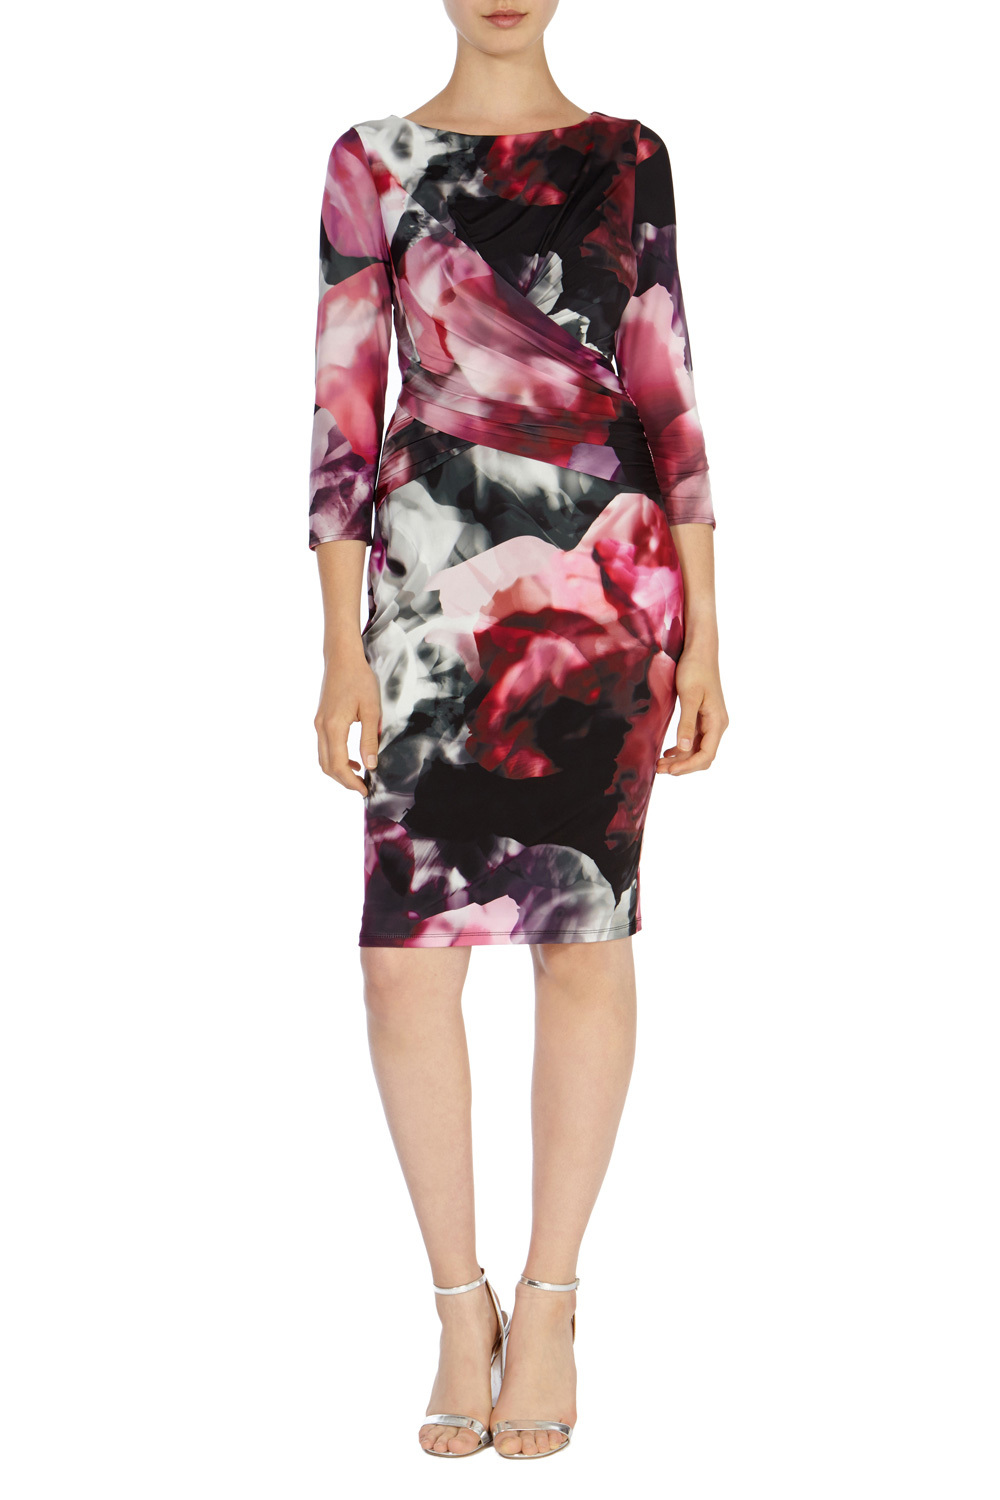 Agnes Sleeved Jersey Dress - style: shift; neckline: round neck; predominant colour: black; length: on the knee; fit: body skimming; occasions: occasion; sleeve length: 3/4 length; sleeve style: standard; pattern: florals; texture group: jersey - stretchy/drapey; season: a/w 2015